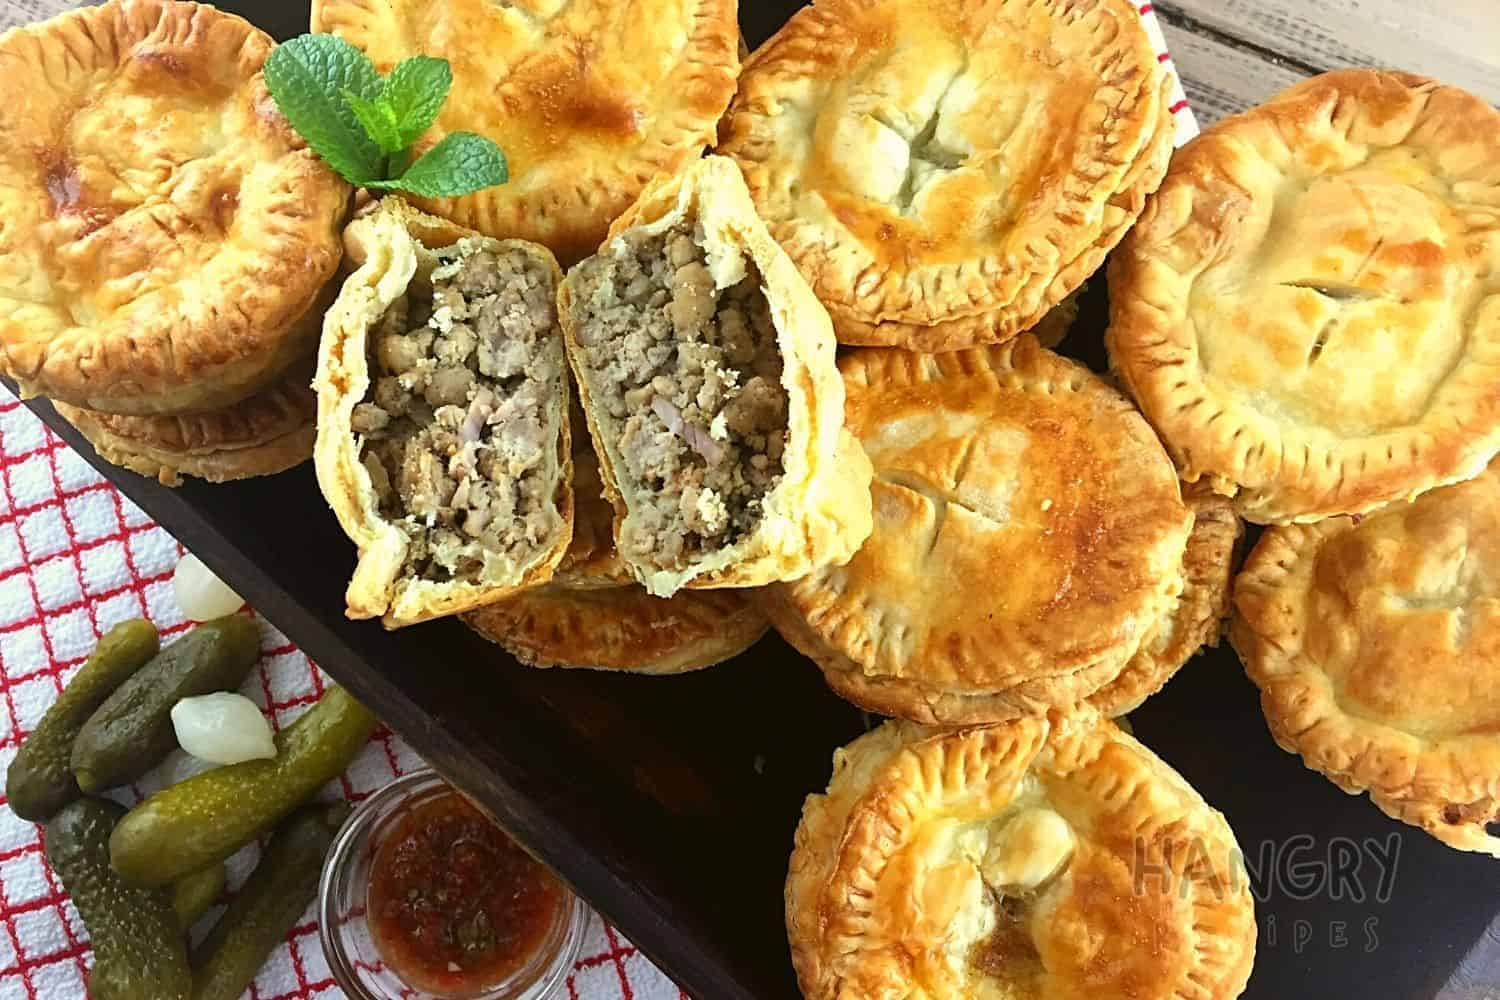 Spicy Pork Pies Filled With Diced Bacon